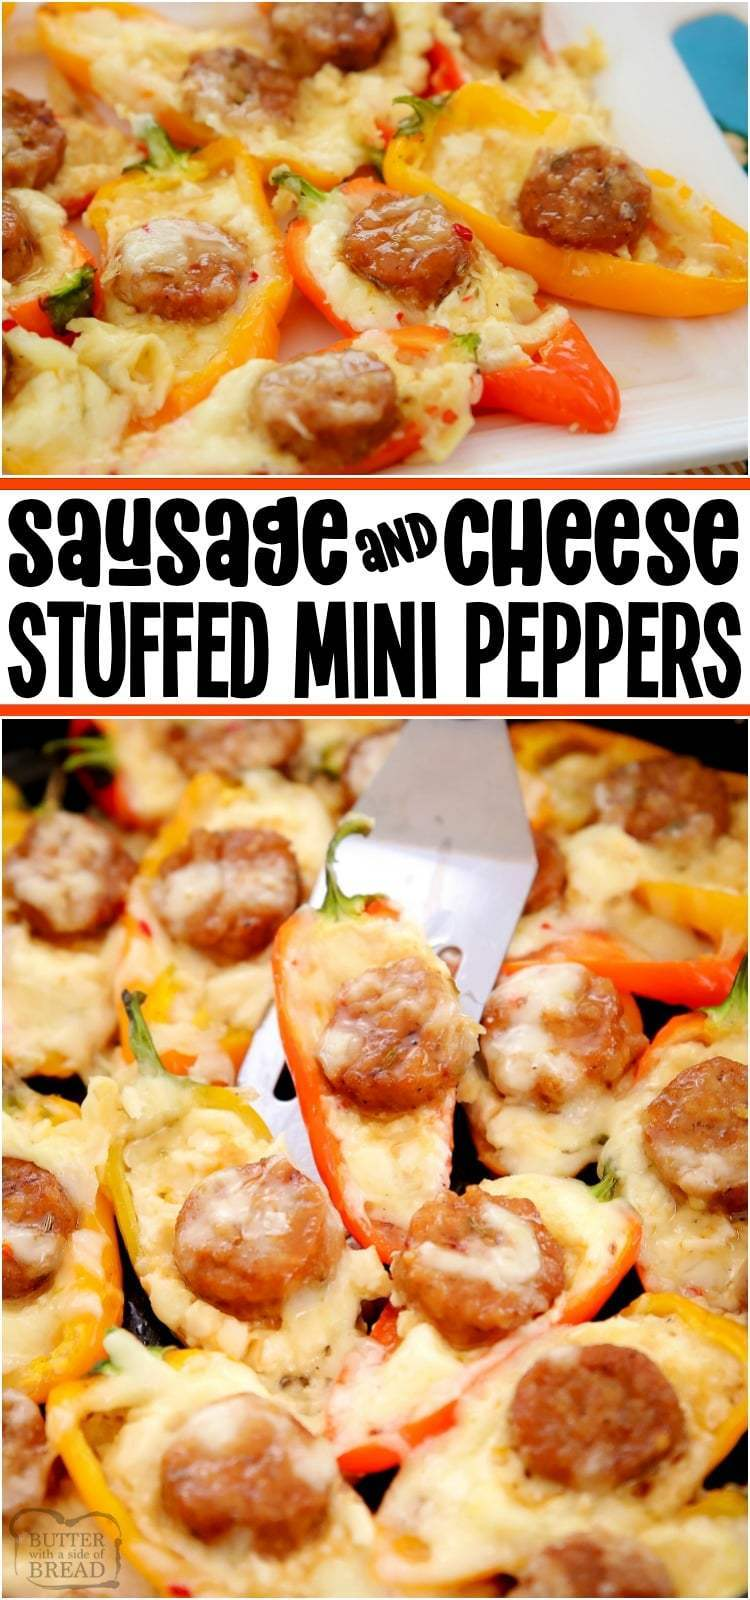 Stuffed Mini Peppers filled with Italian Sausage, cream cheese and Pepper Jack for a hearty, flavorful appetizer everyone loves!